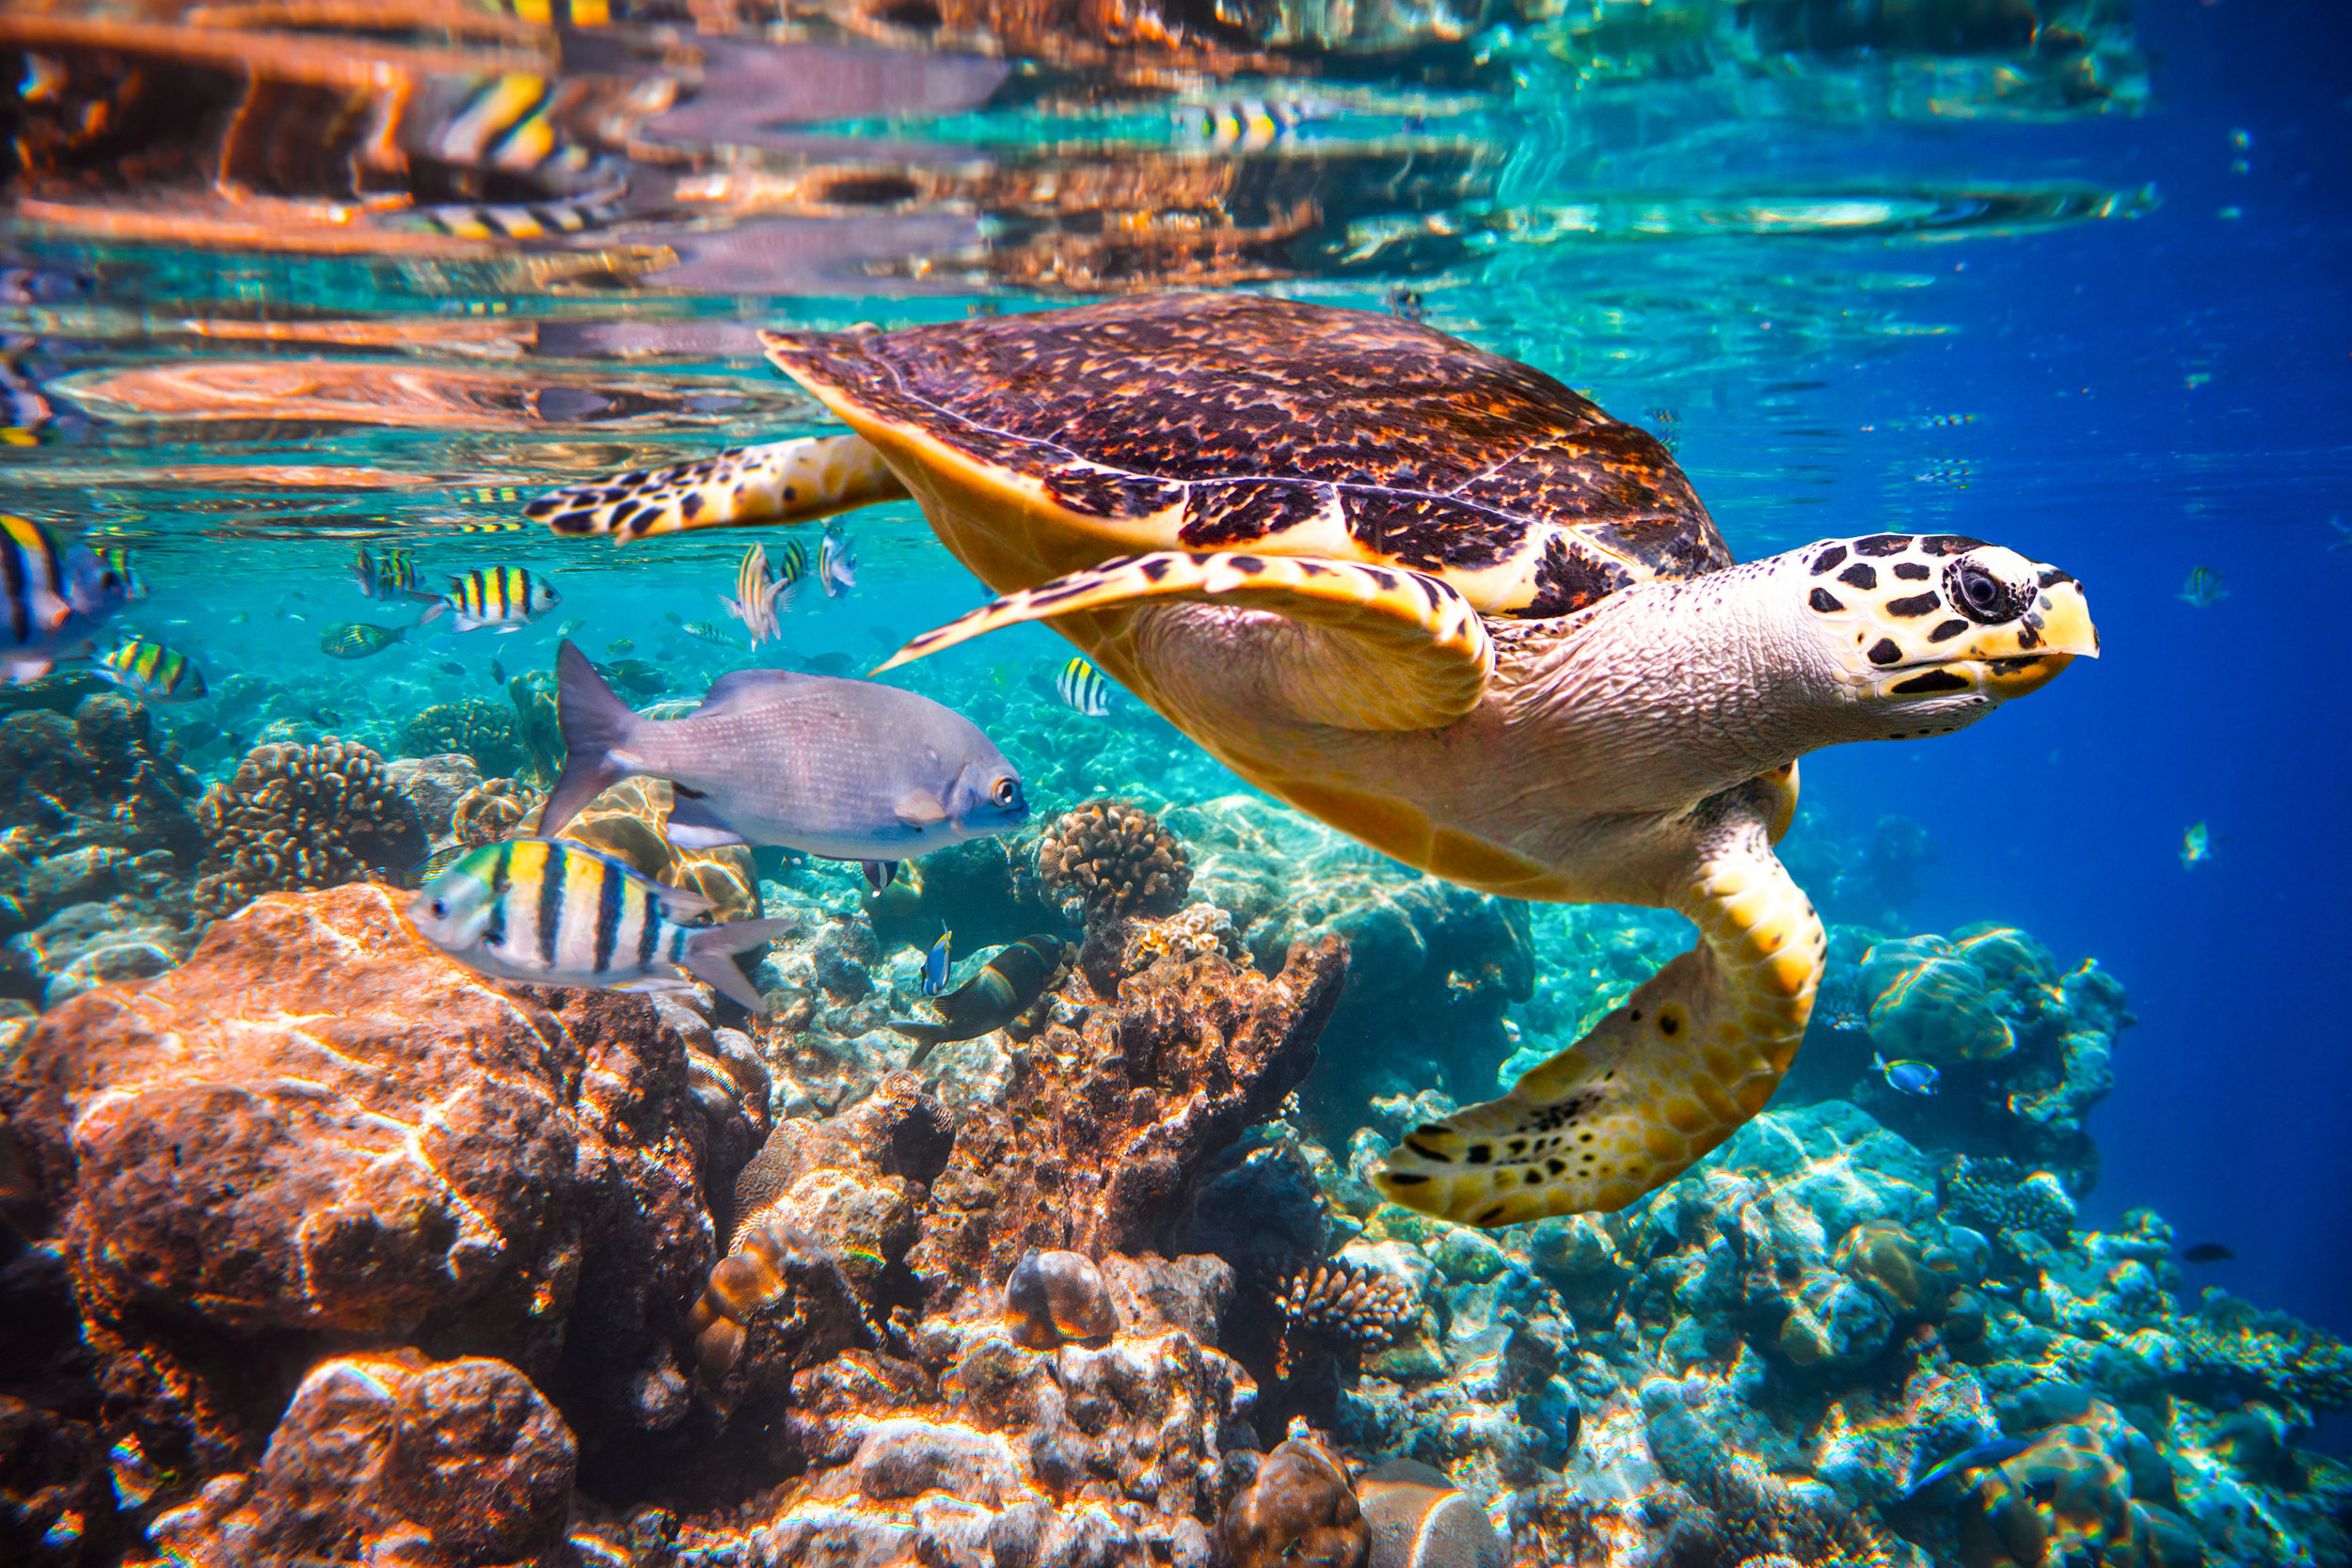 Globally, one million species are at risk of extinction according to a new comprehensive report by the Intergovernmental Science-Policy Platform on Biodiversity and Ecosystem Services (IPBES). 'Transformative changes' are needed to protect and restore nature, and the first stirrings of such changes are already being seen, especially by young people. Image source: IPBES / Shutterstock.